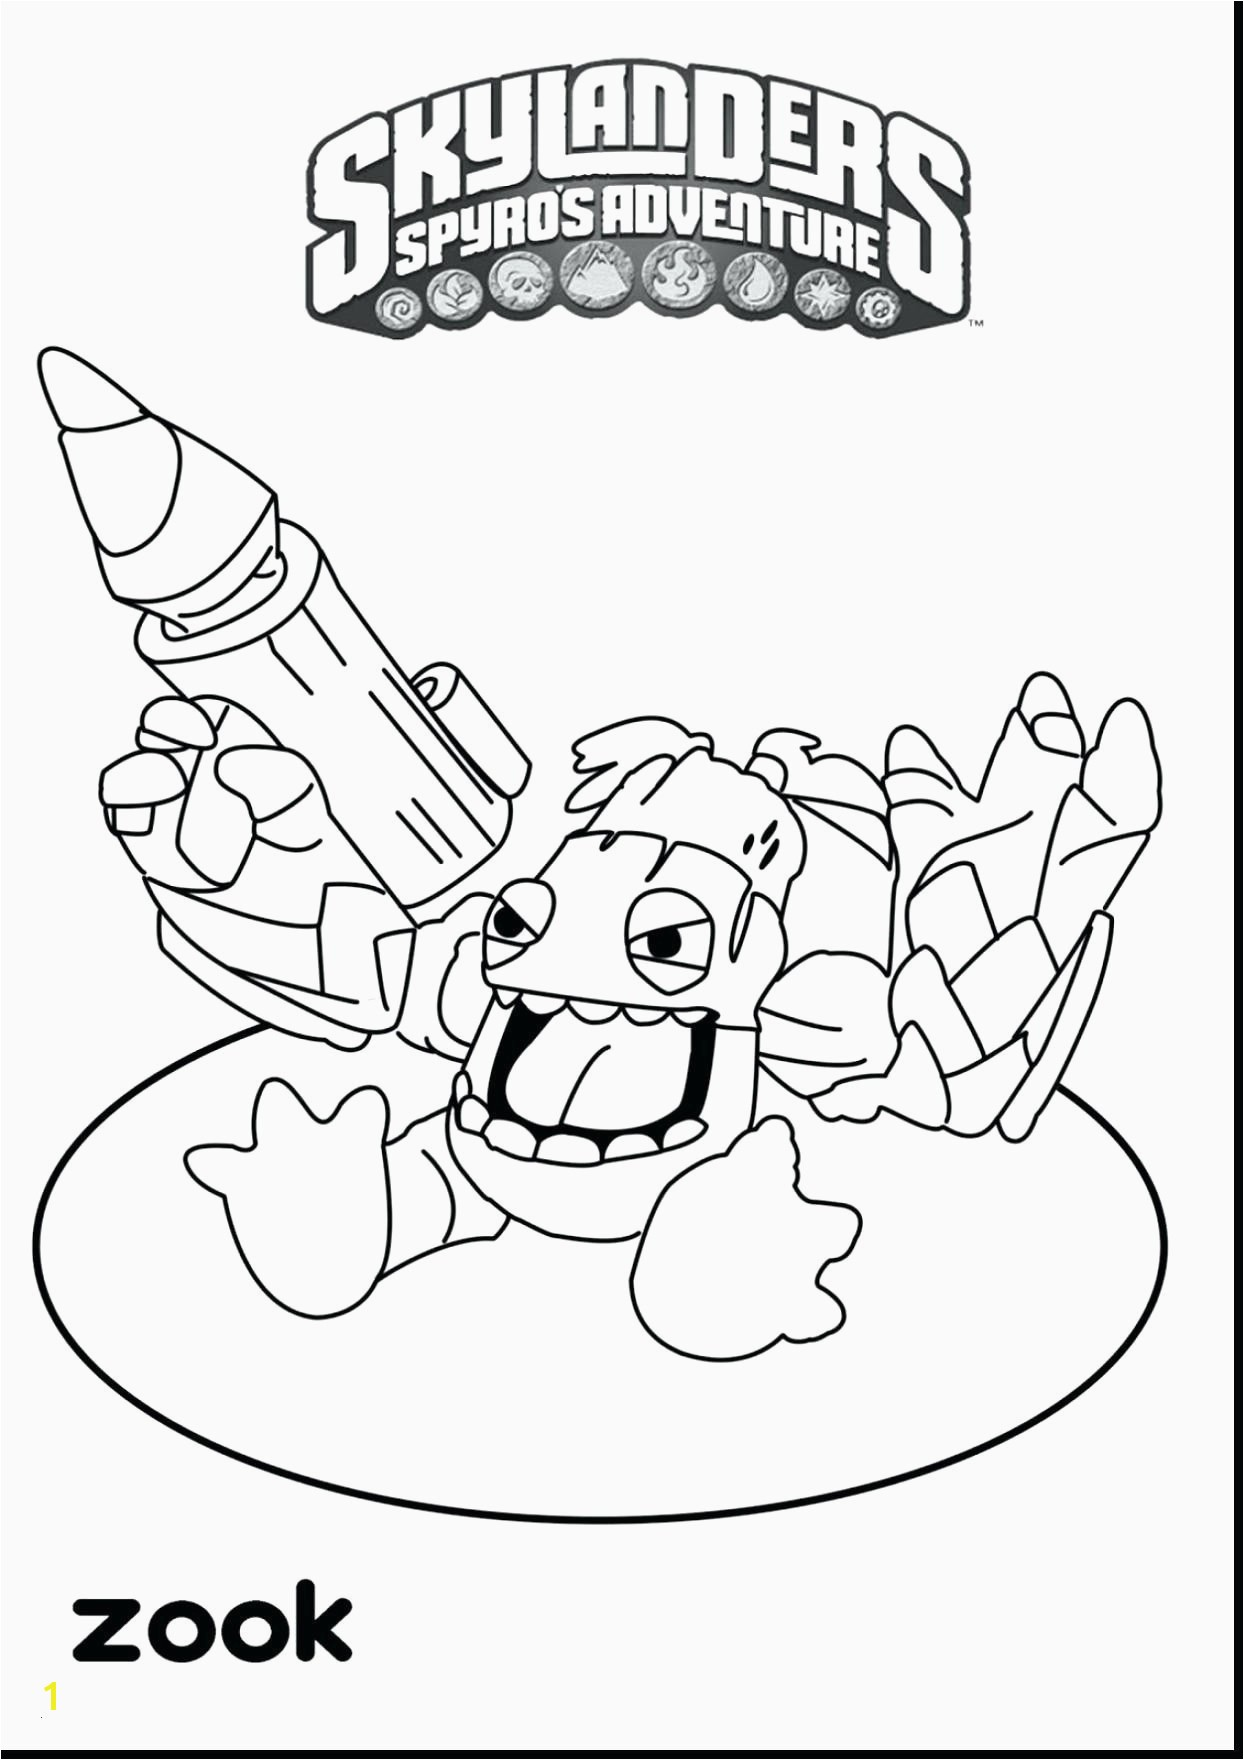 Coloring Page Websites New Witch Coloring Pages New Crayola Pages 0d Coloring Page Coloring Page